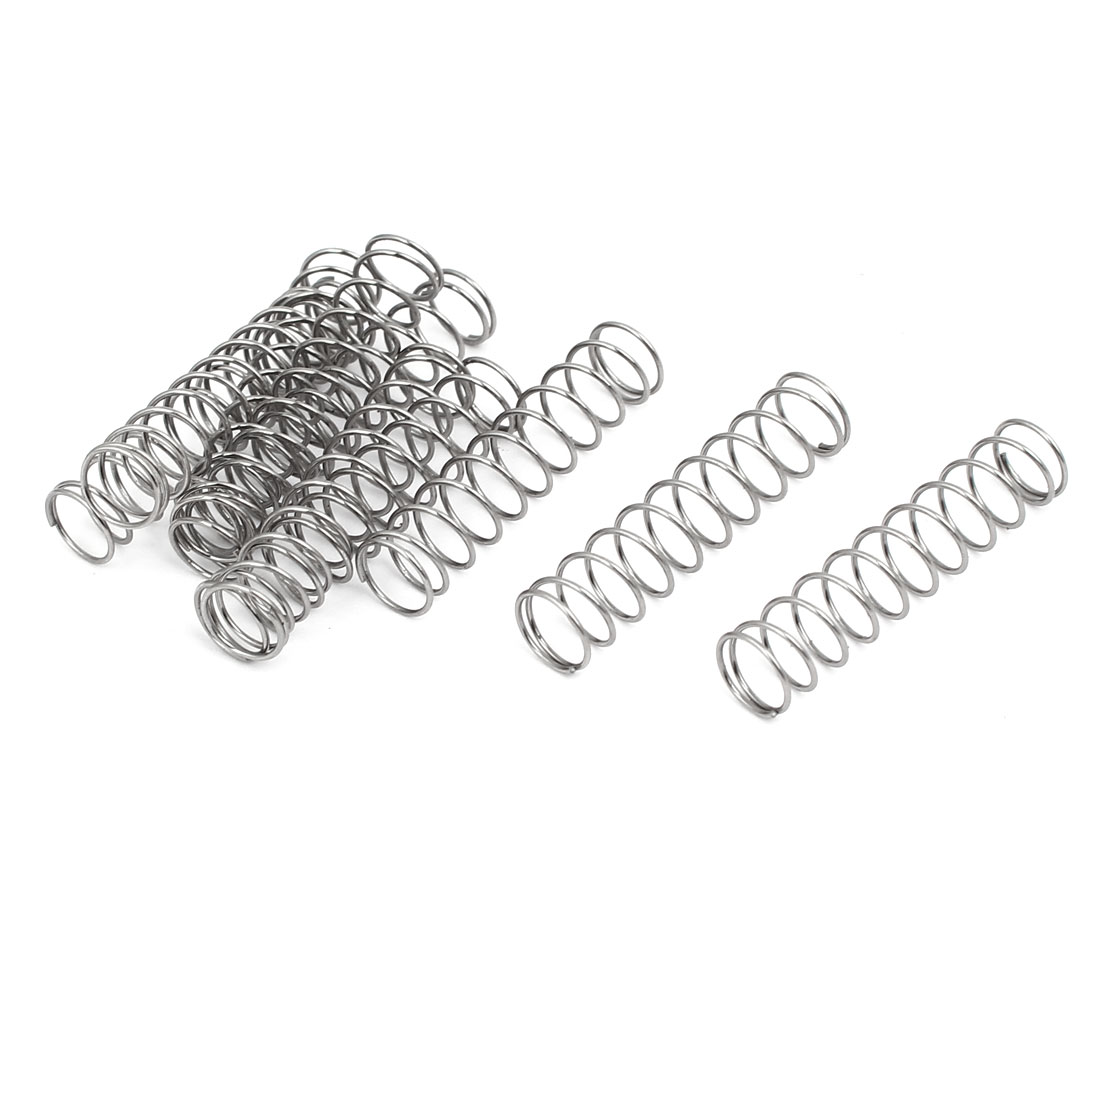 0.6mmx8mmx35mm 304 Stainless Steel Compression Springs Silver Tone 10pcs